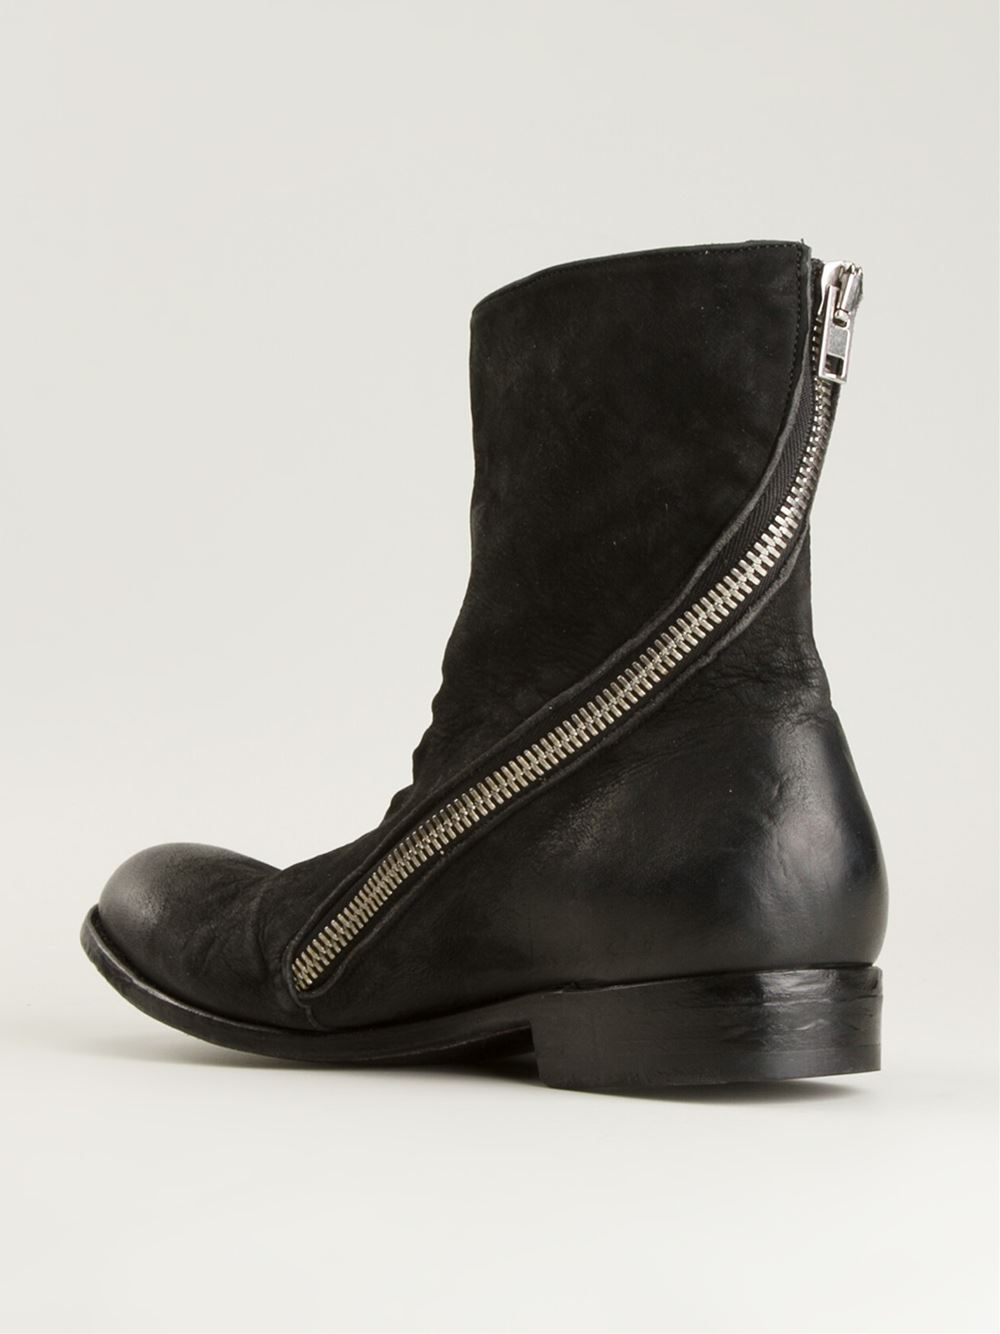 Alfred Lyst in The Black Last Conspiracy for Boots Men eE9DHIW2Y